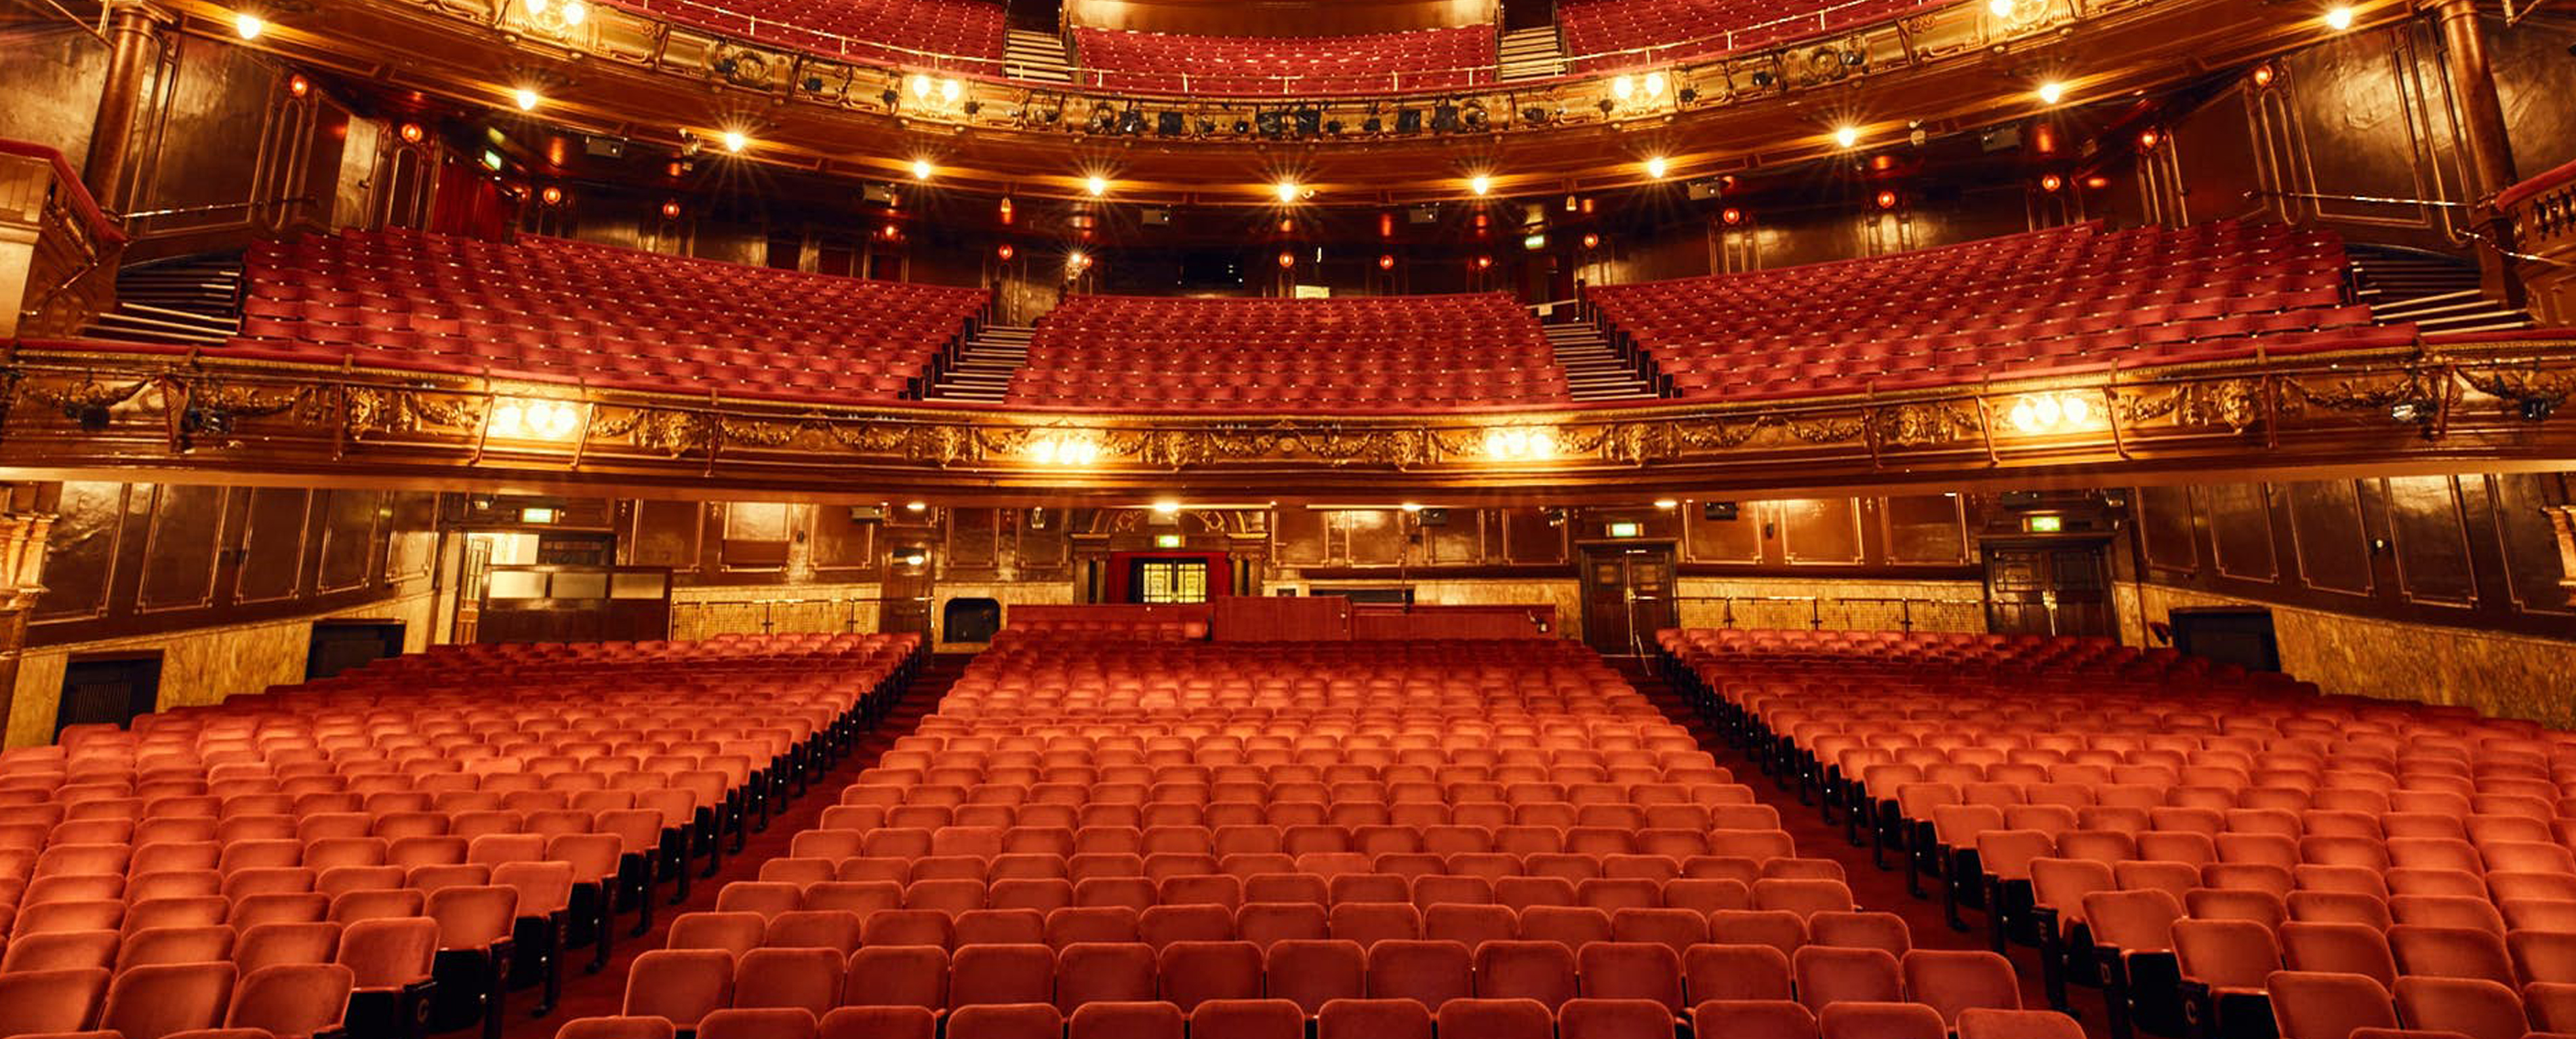 A photograph of the London Palladium auditorium